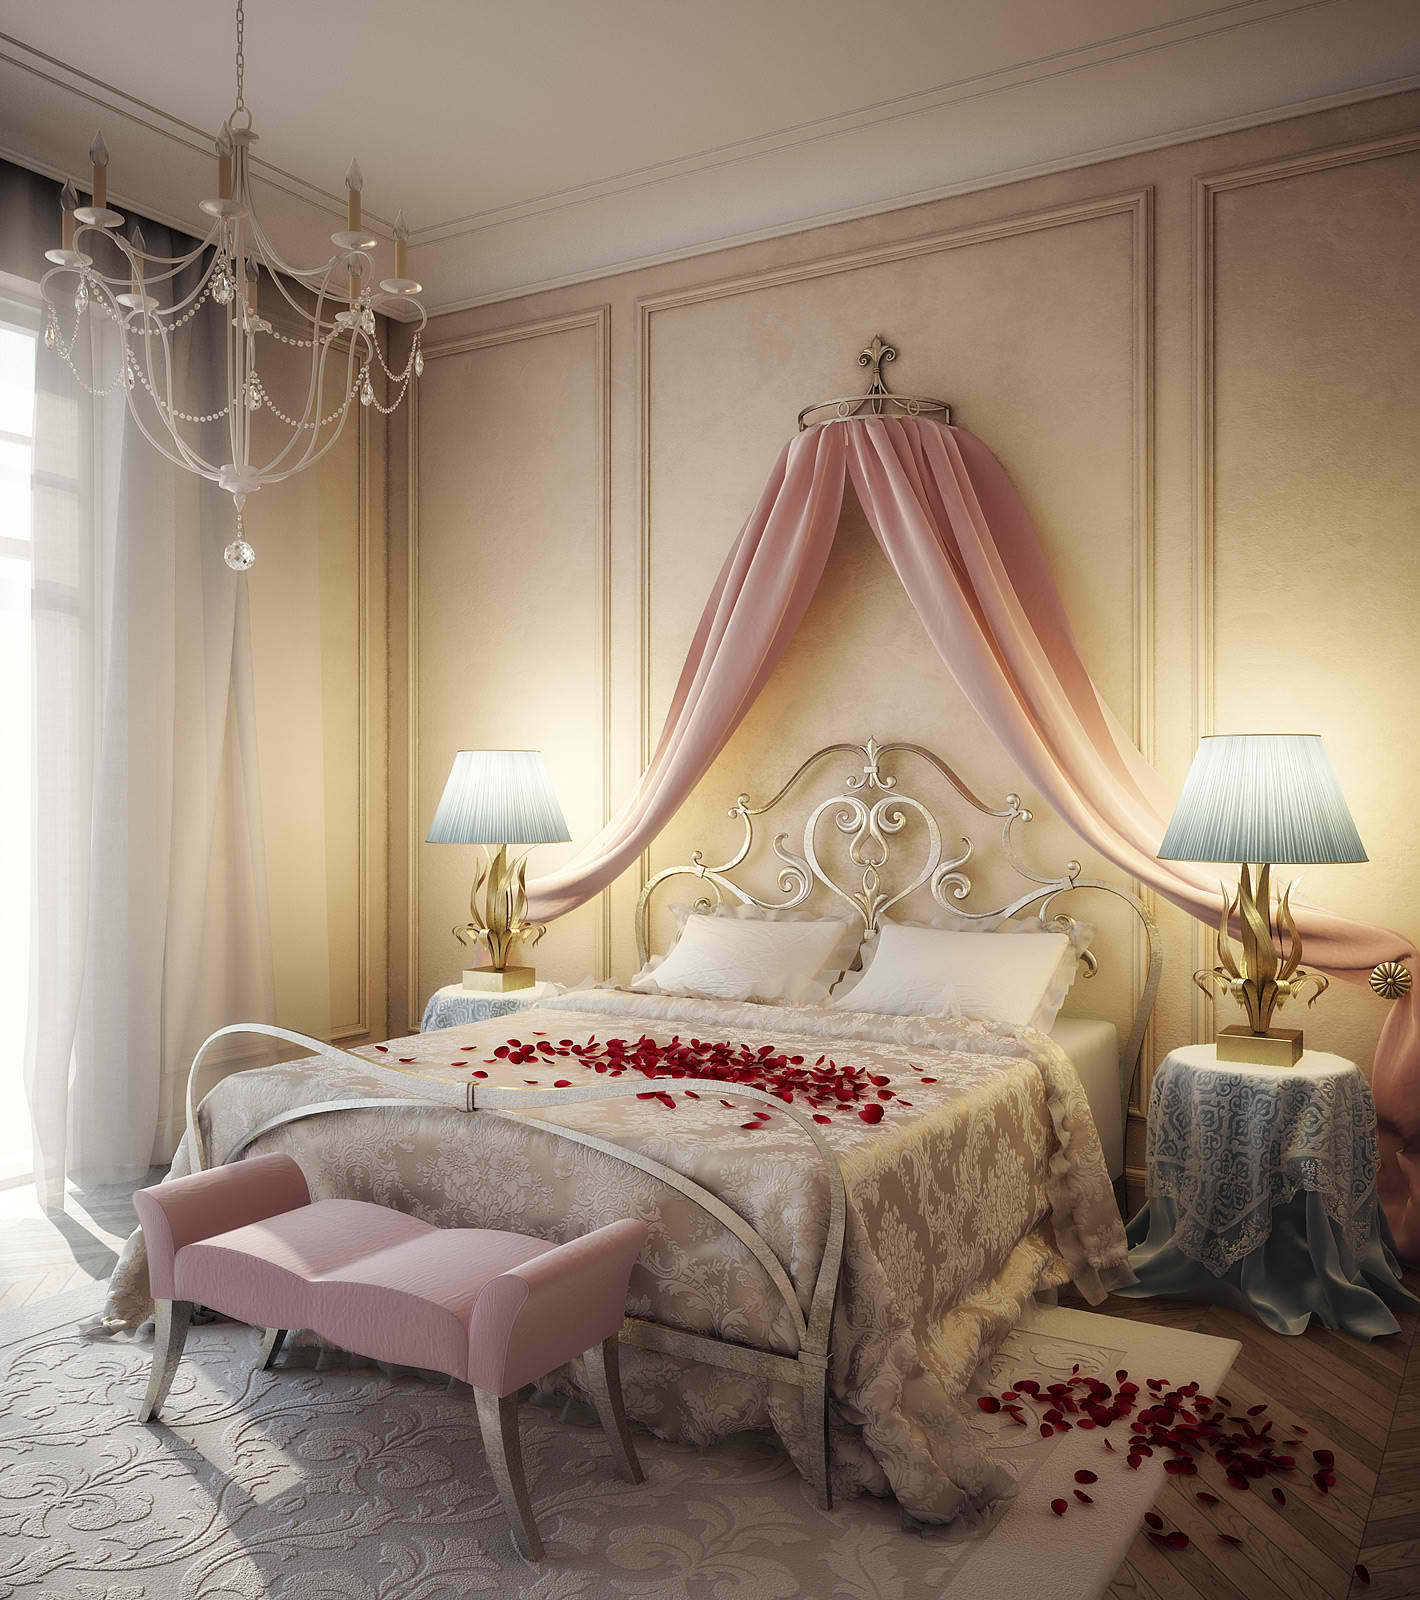 20 romantic bedroom ideas decoholic for Bedroom furnishing ideas